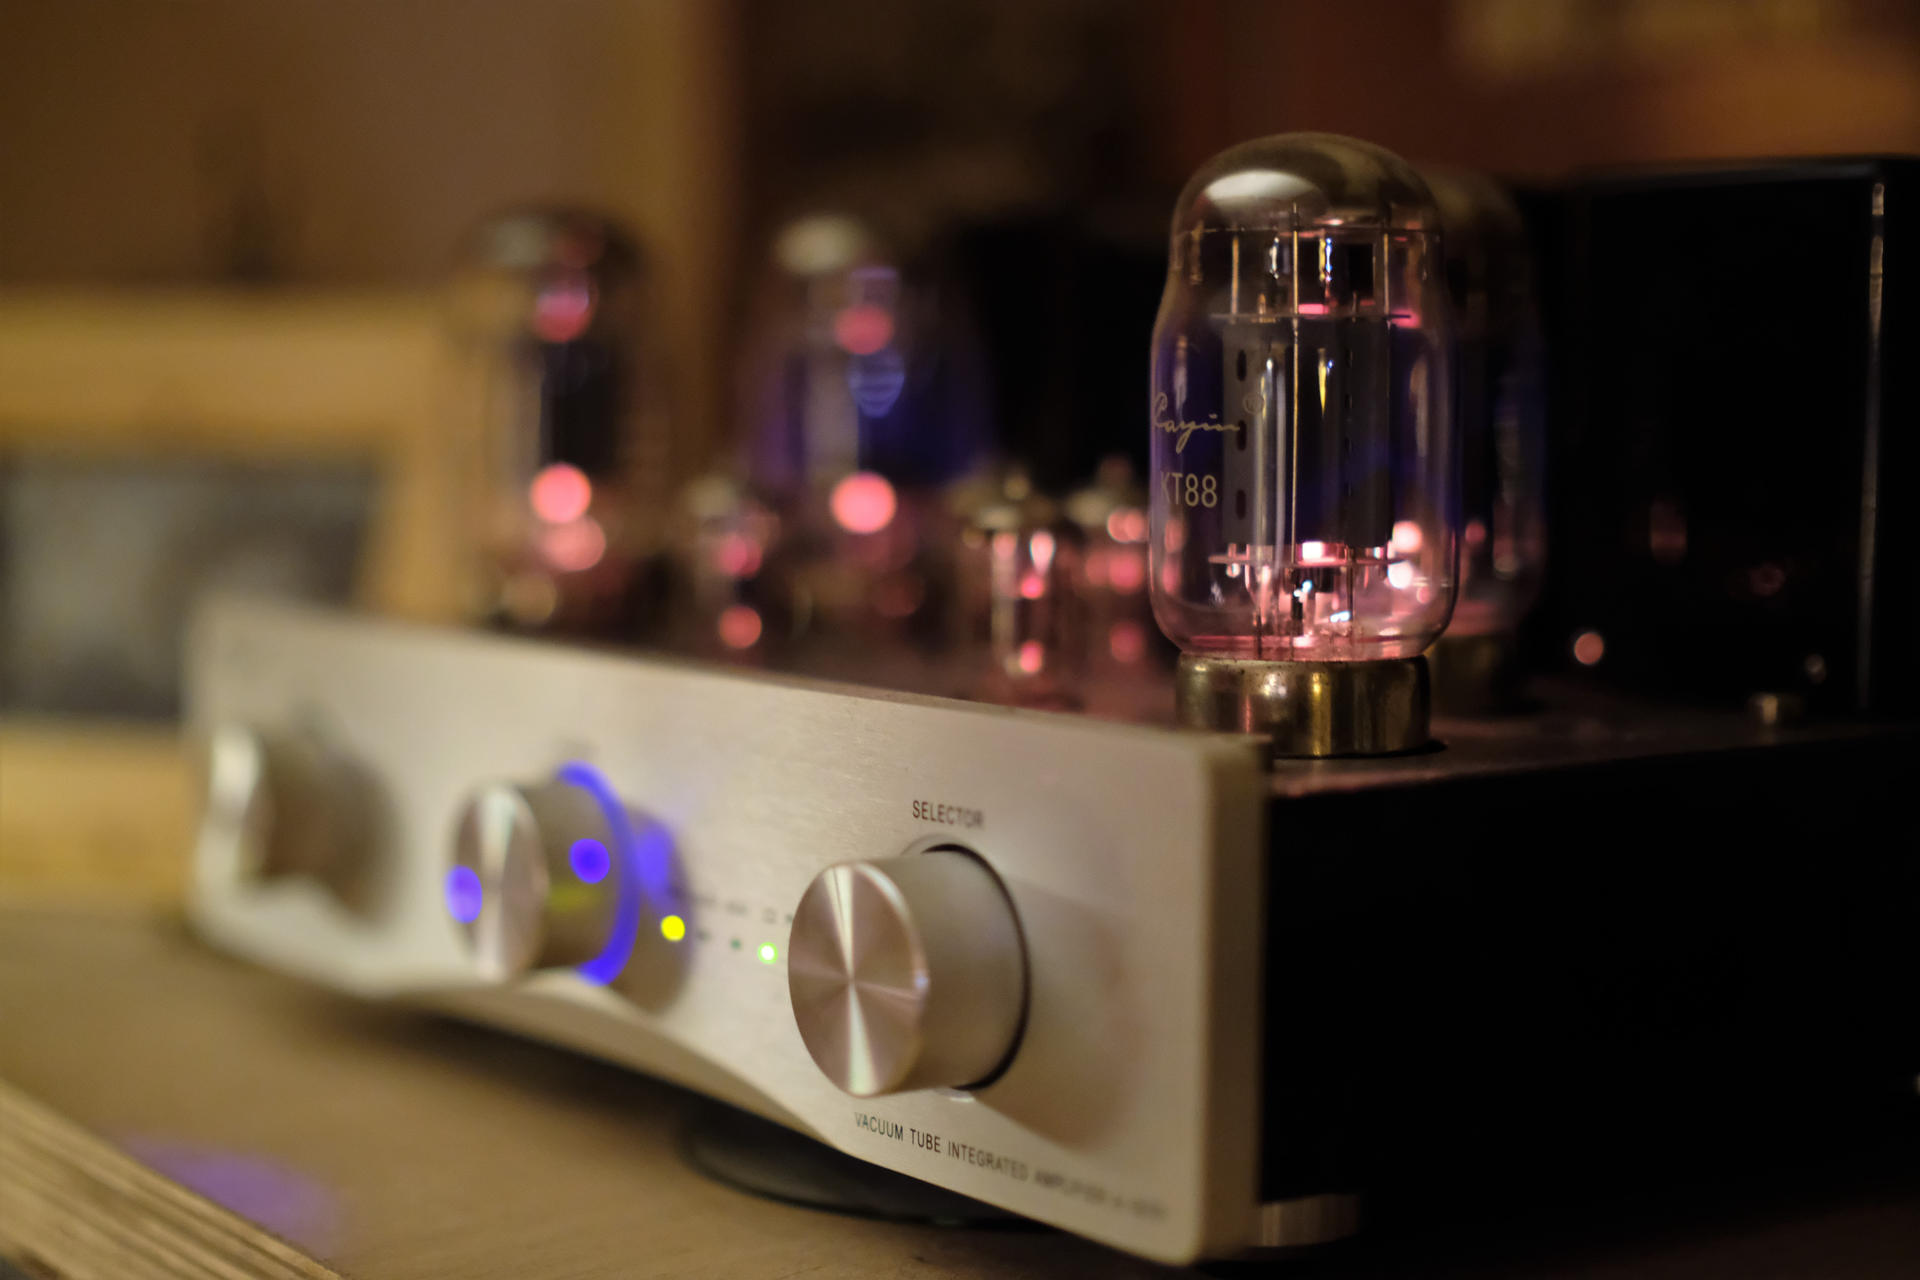 Chinese tube amp by Chinese lens at F0,95 aperture